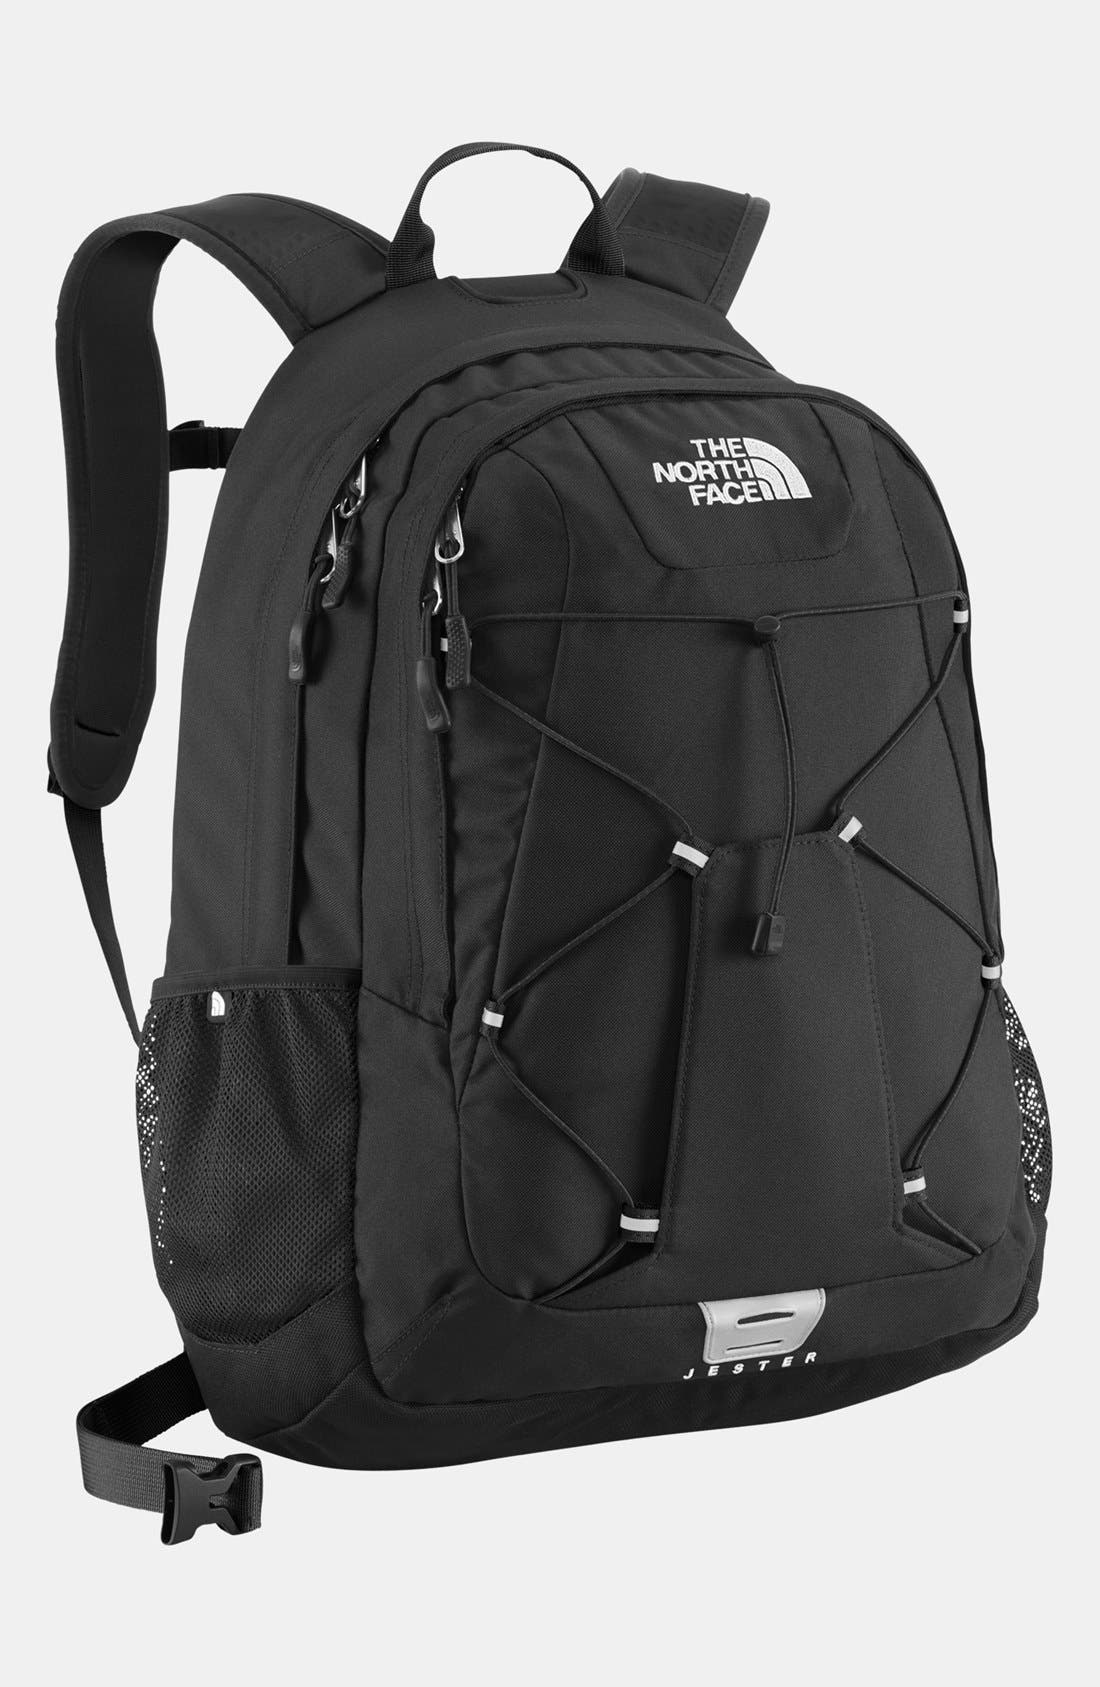 Alternate Image 1 Selected - The North Face 'Jester' Backpack (Girls)